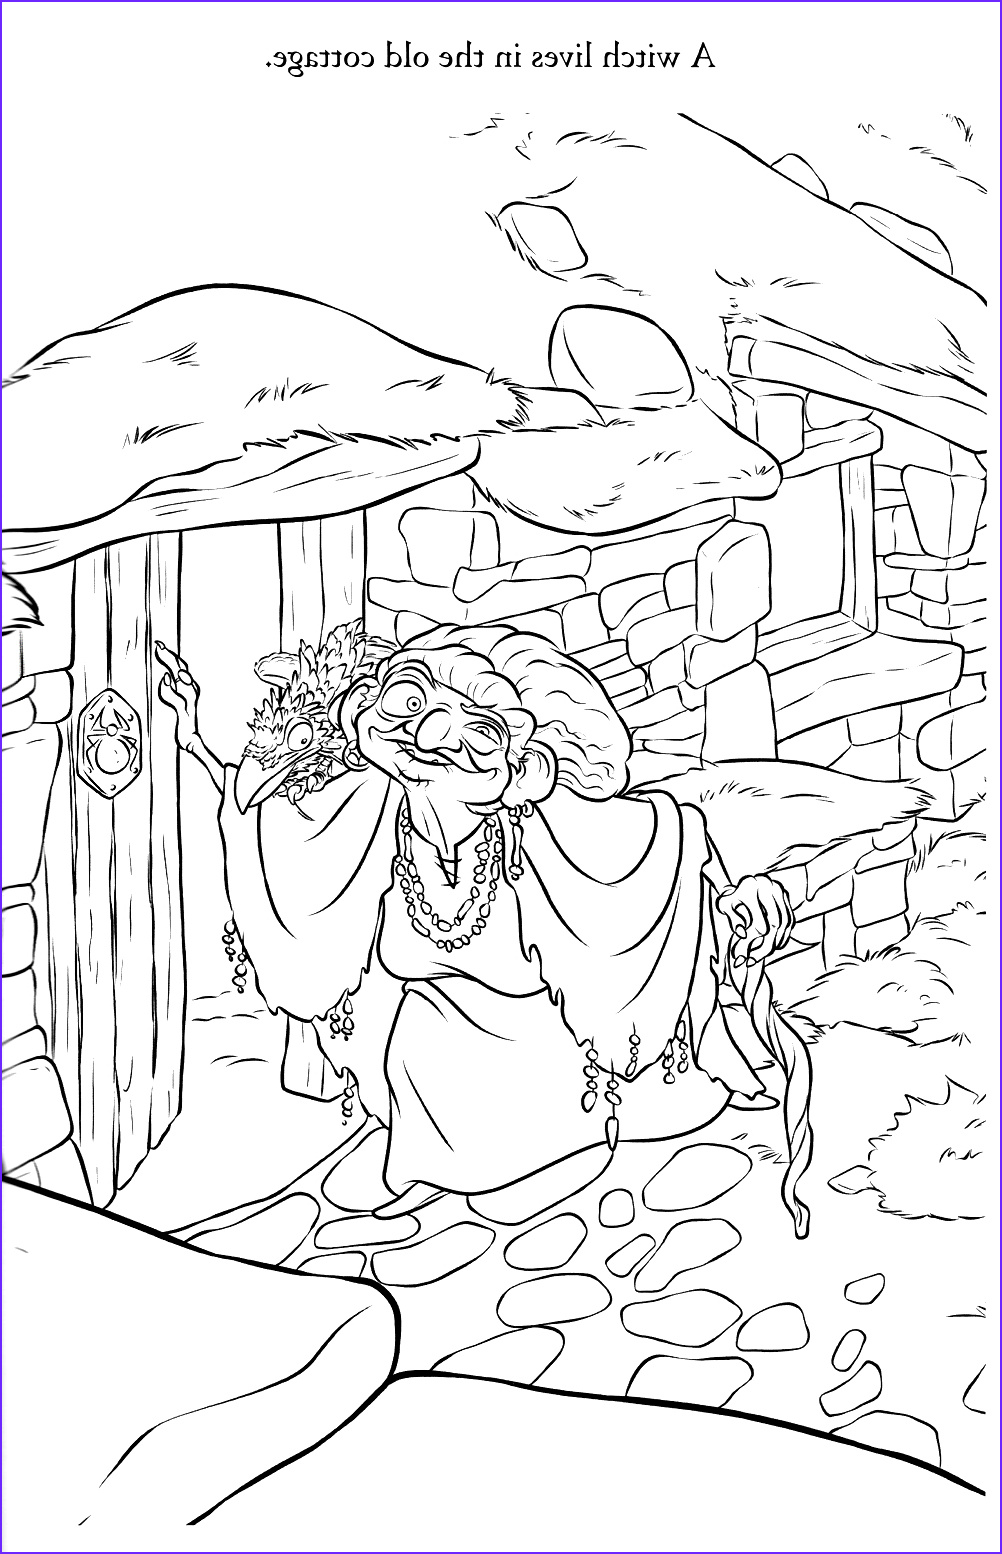 Coloring Book Images Luxury Stock Brave Coloring Pages Best Coloring Pages for Kids